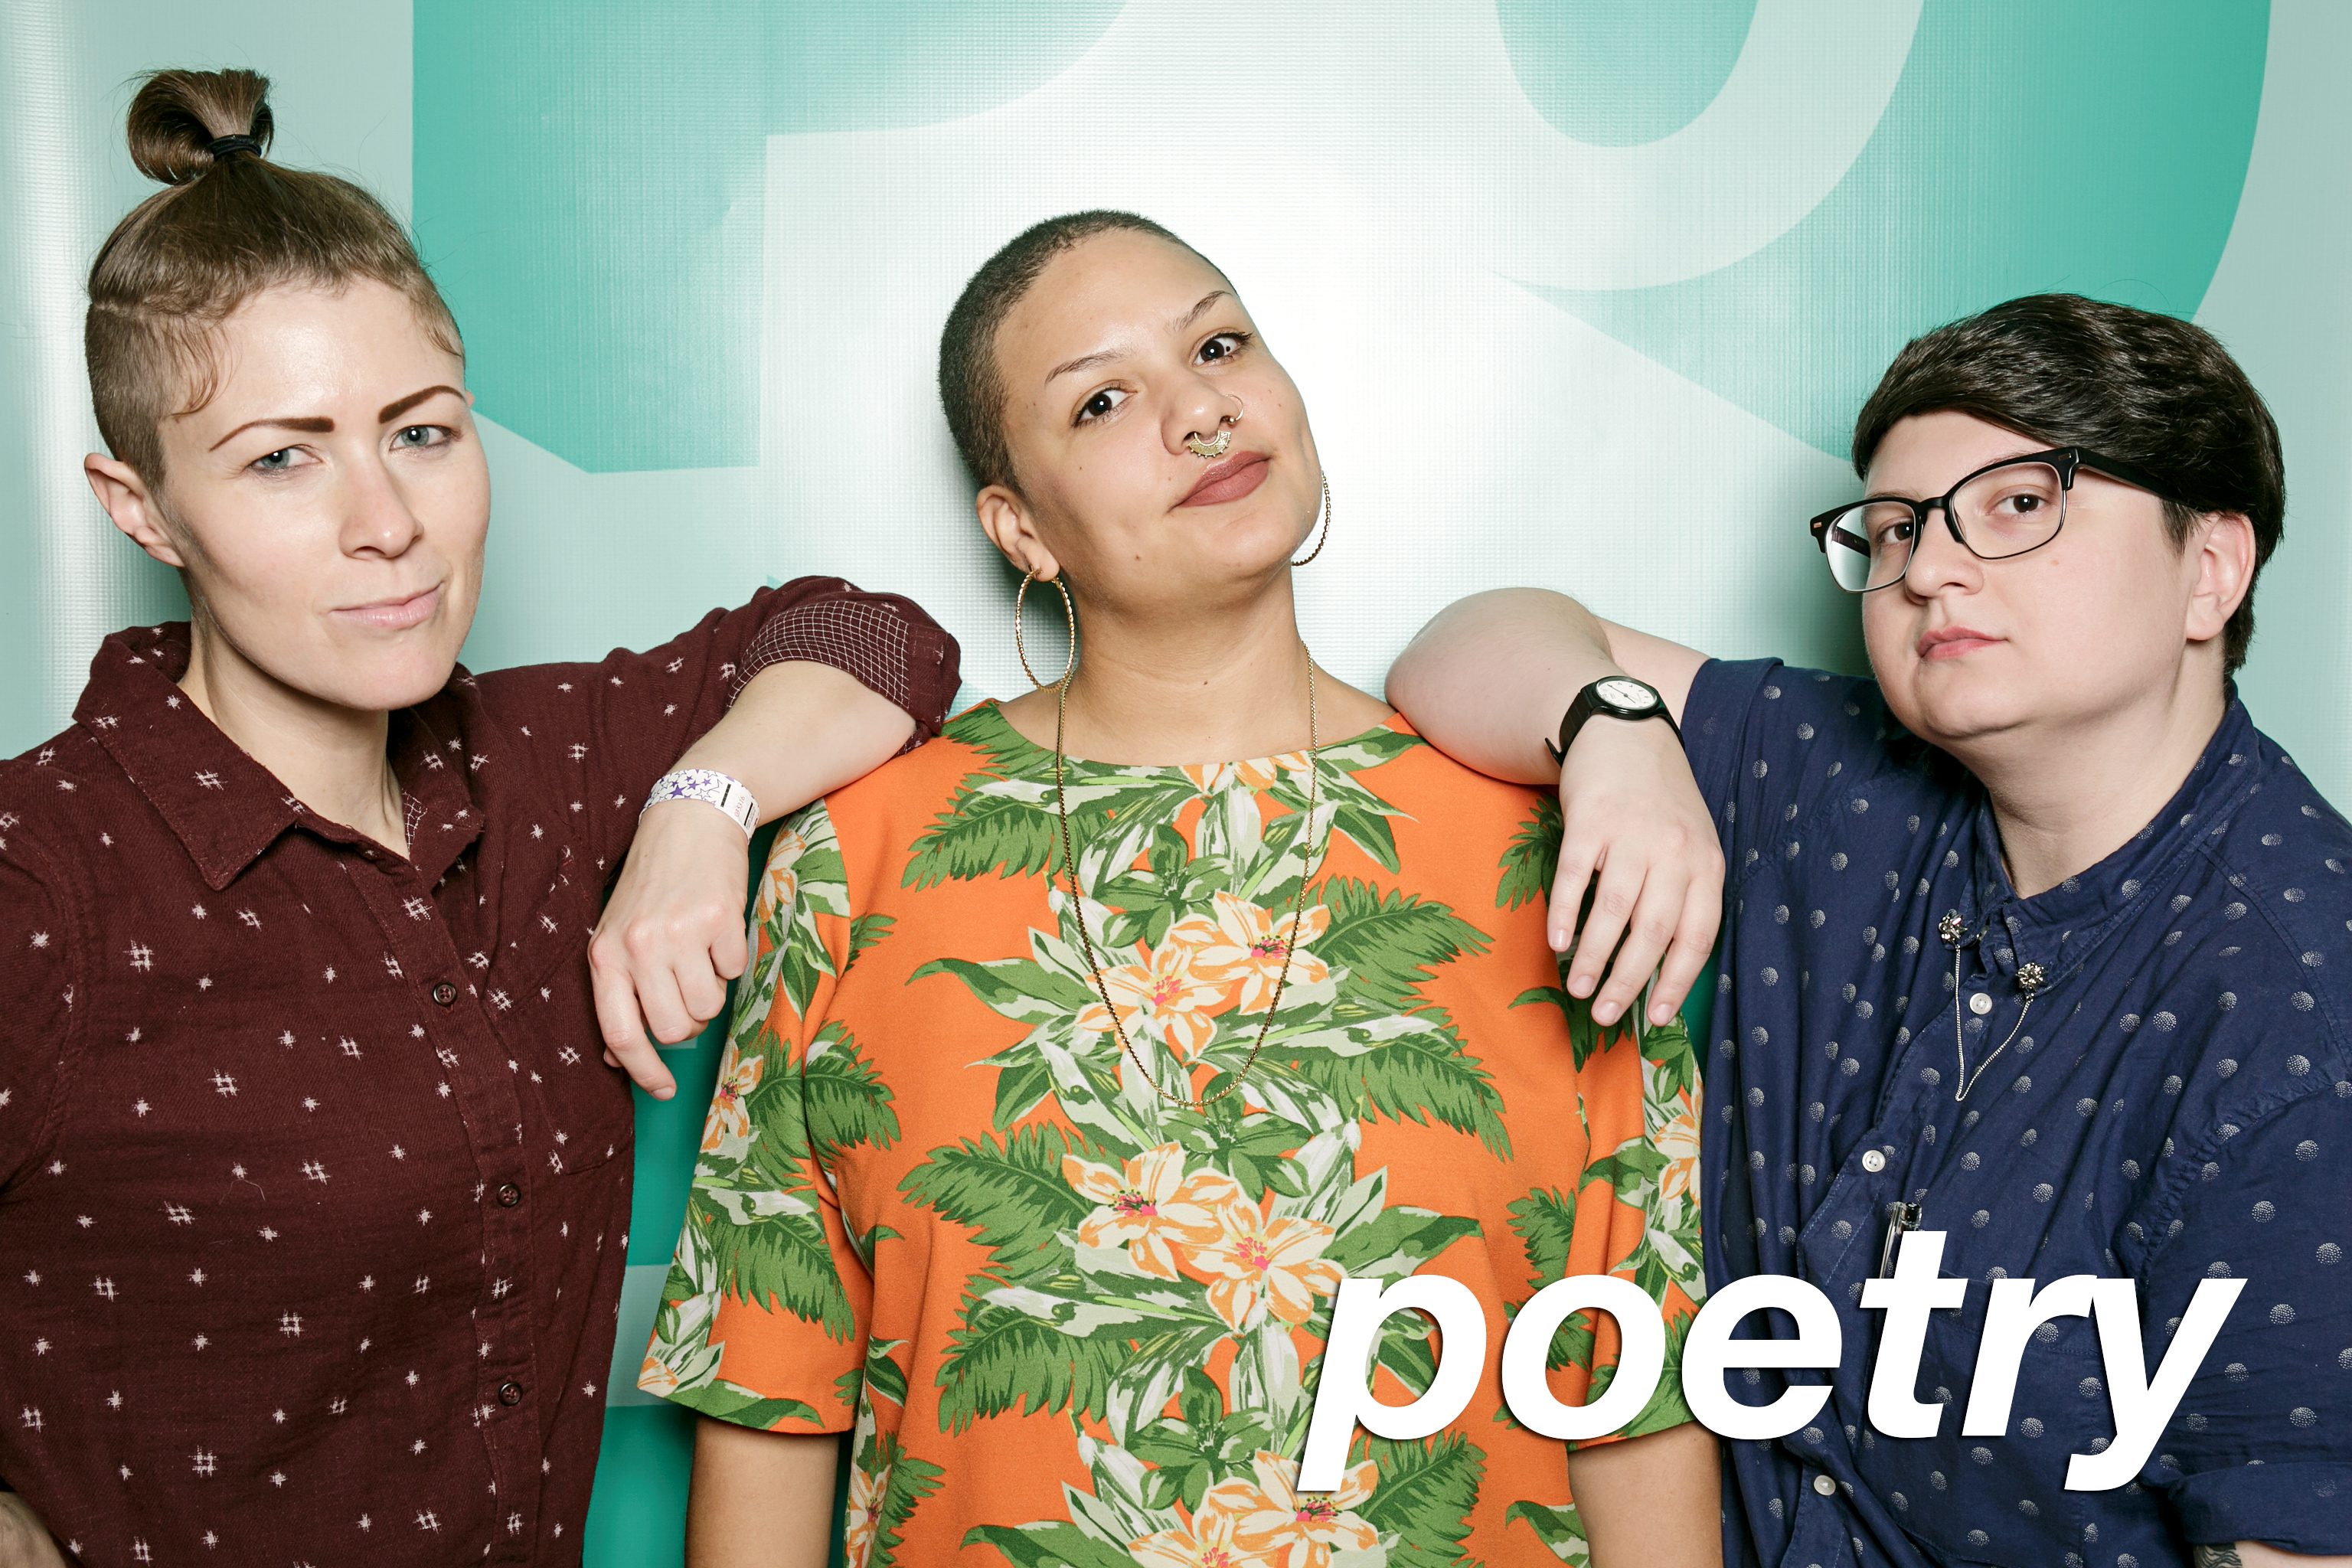 portrait booth photos from poetry foundation's winter party, december 2017